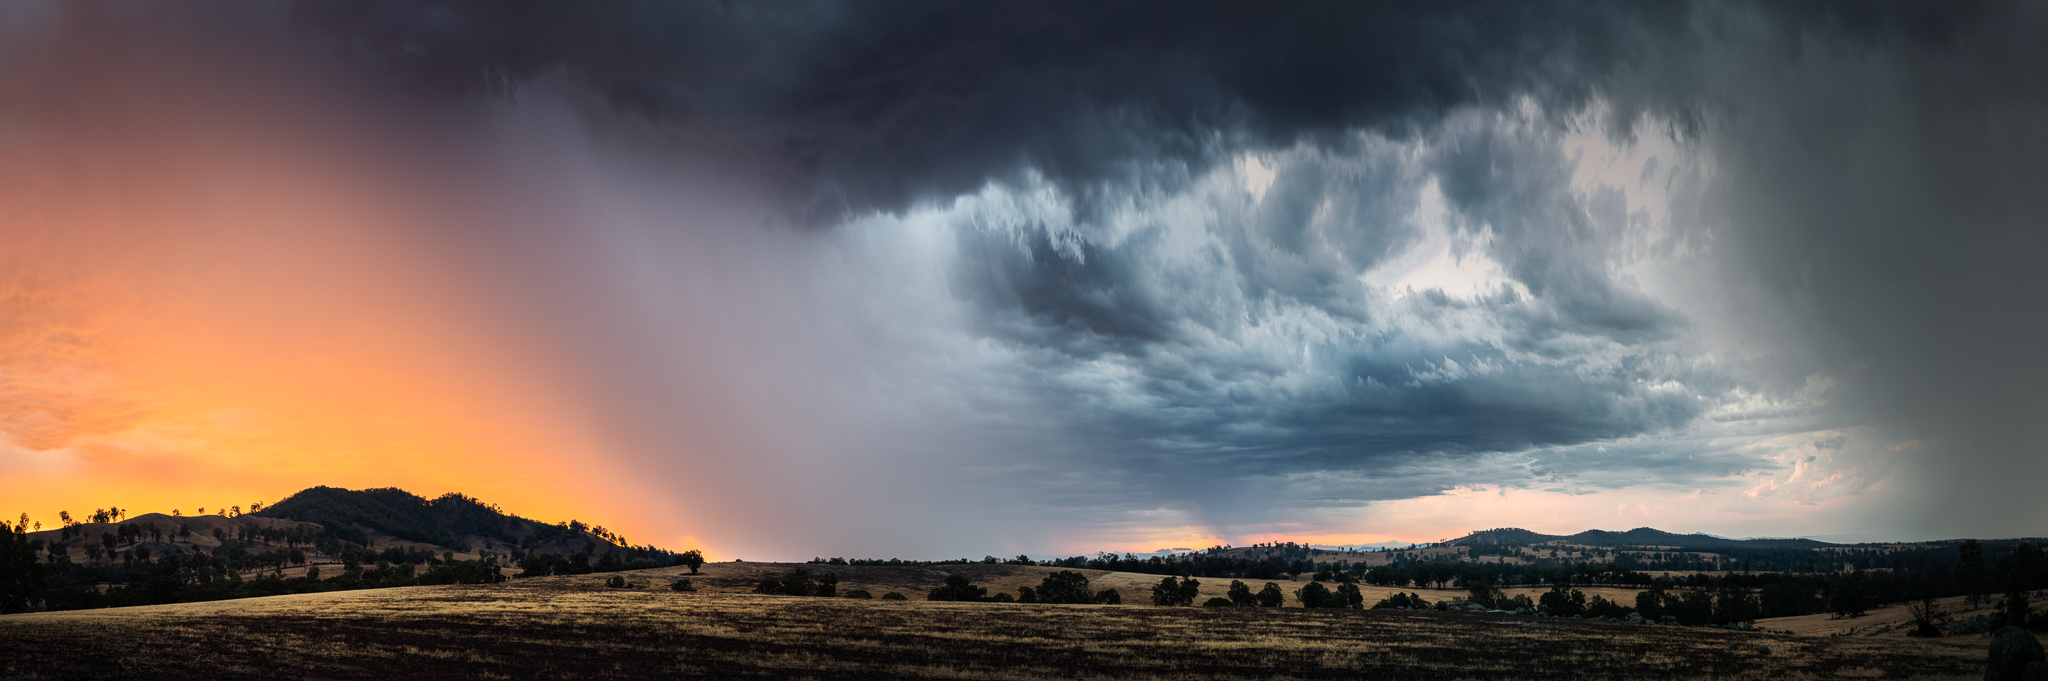 22 image panorama of a passing storm near Maldon, Victoria